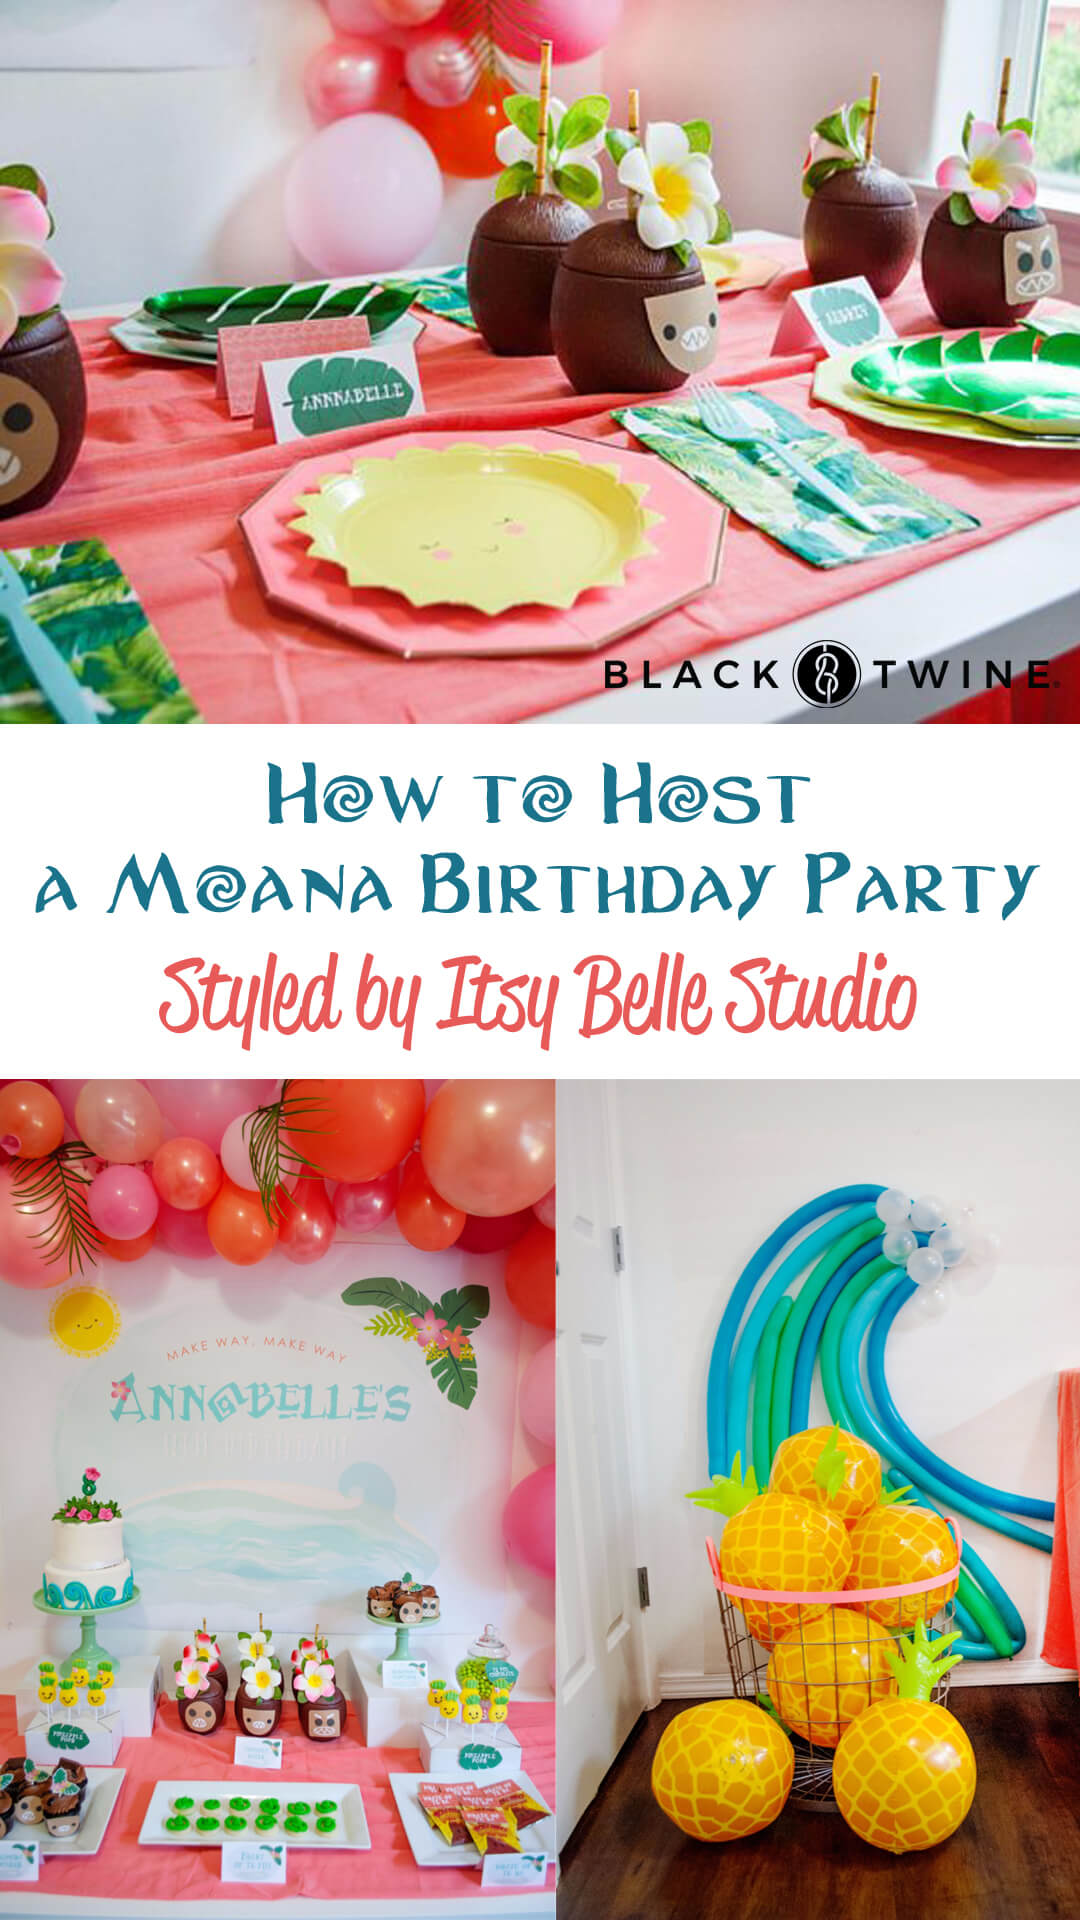 Photos from Moana Birthday Party by Itsy Belle Studio | Black Twine